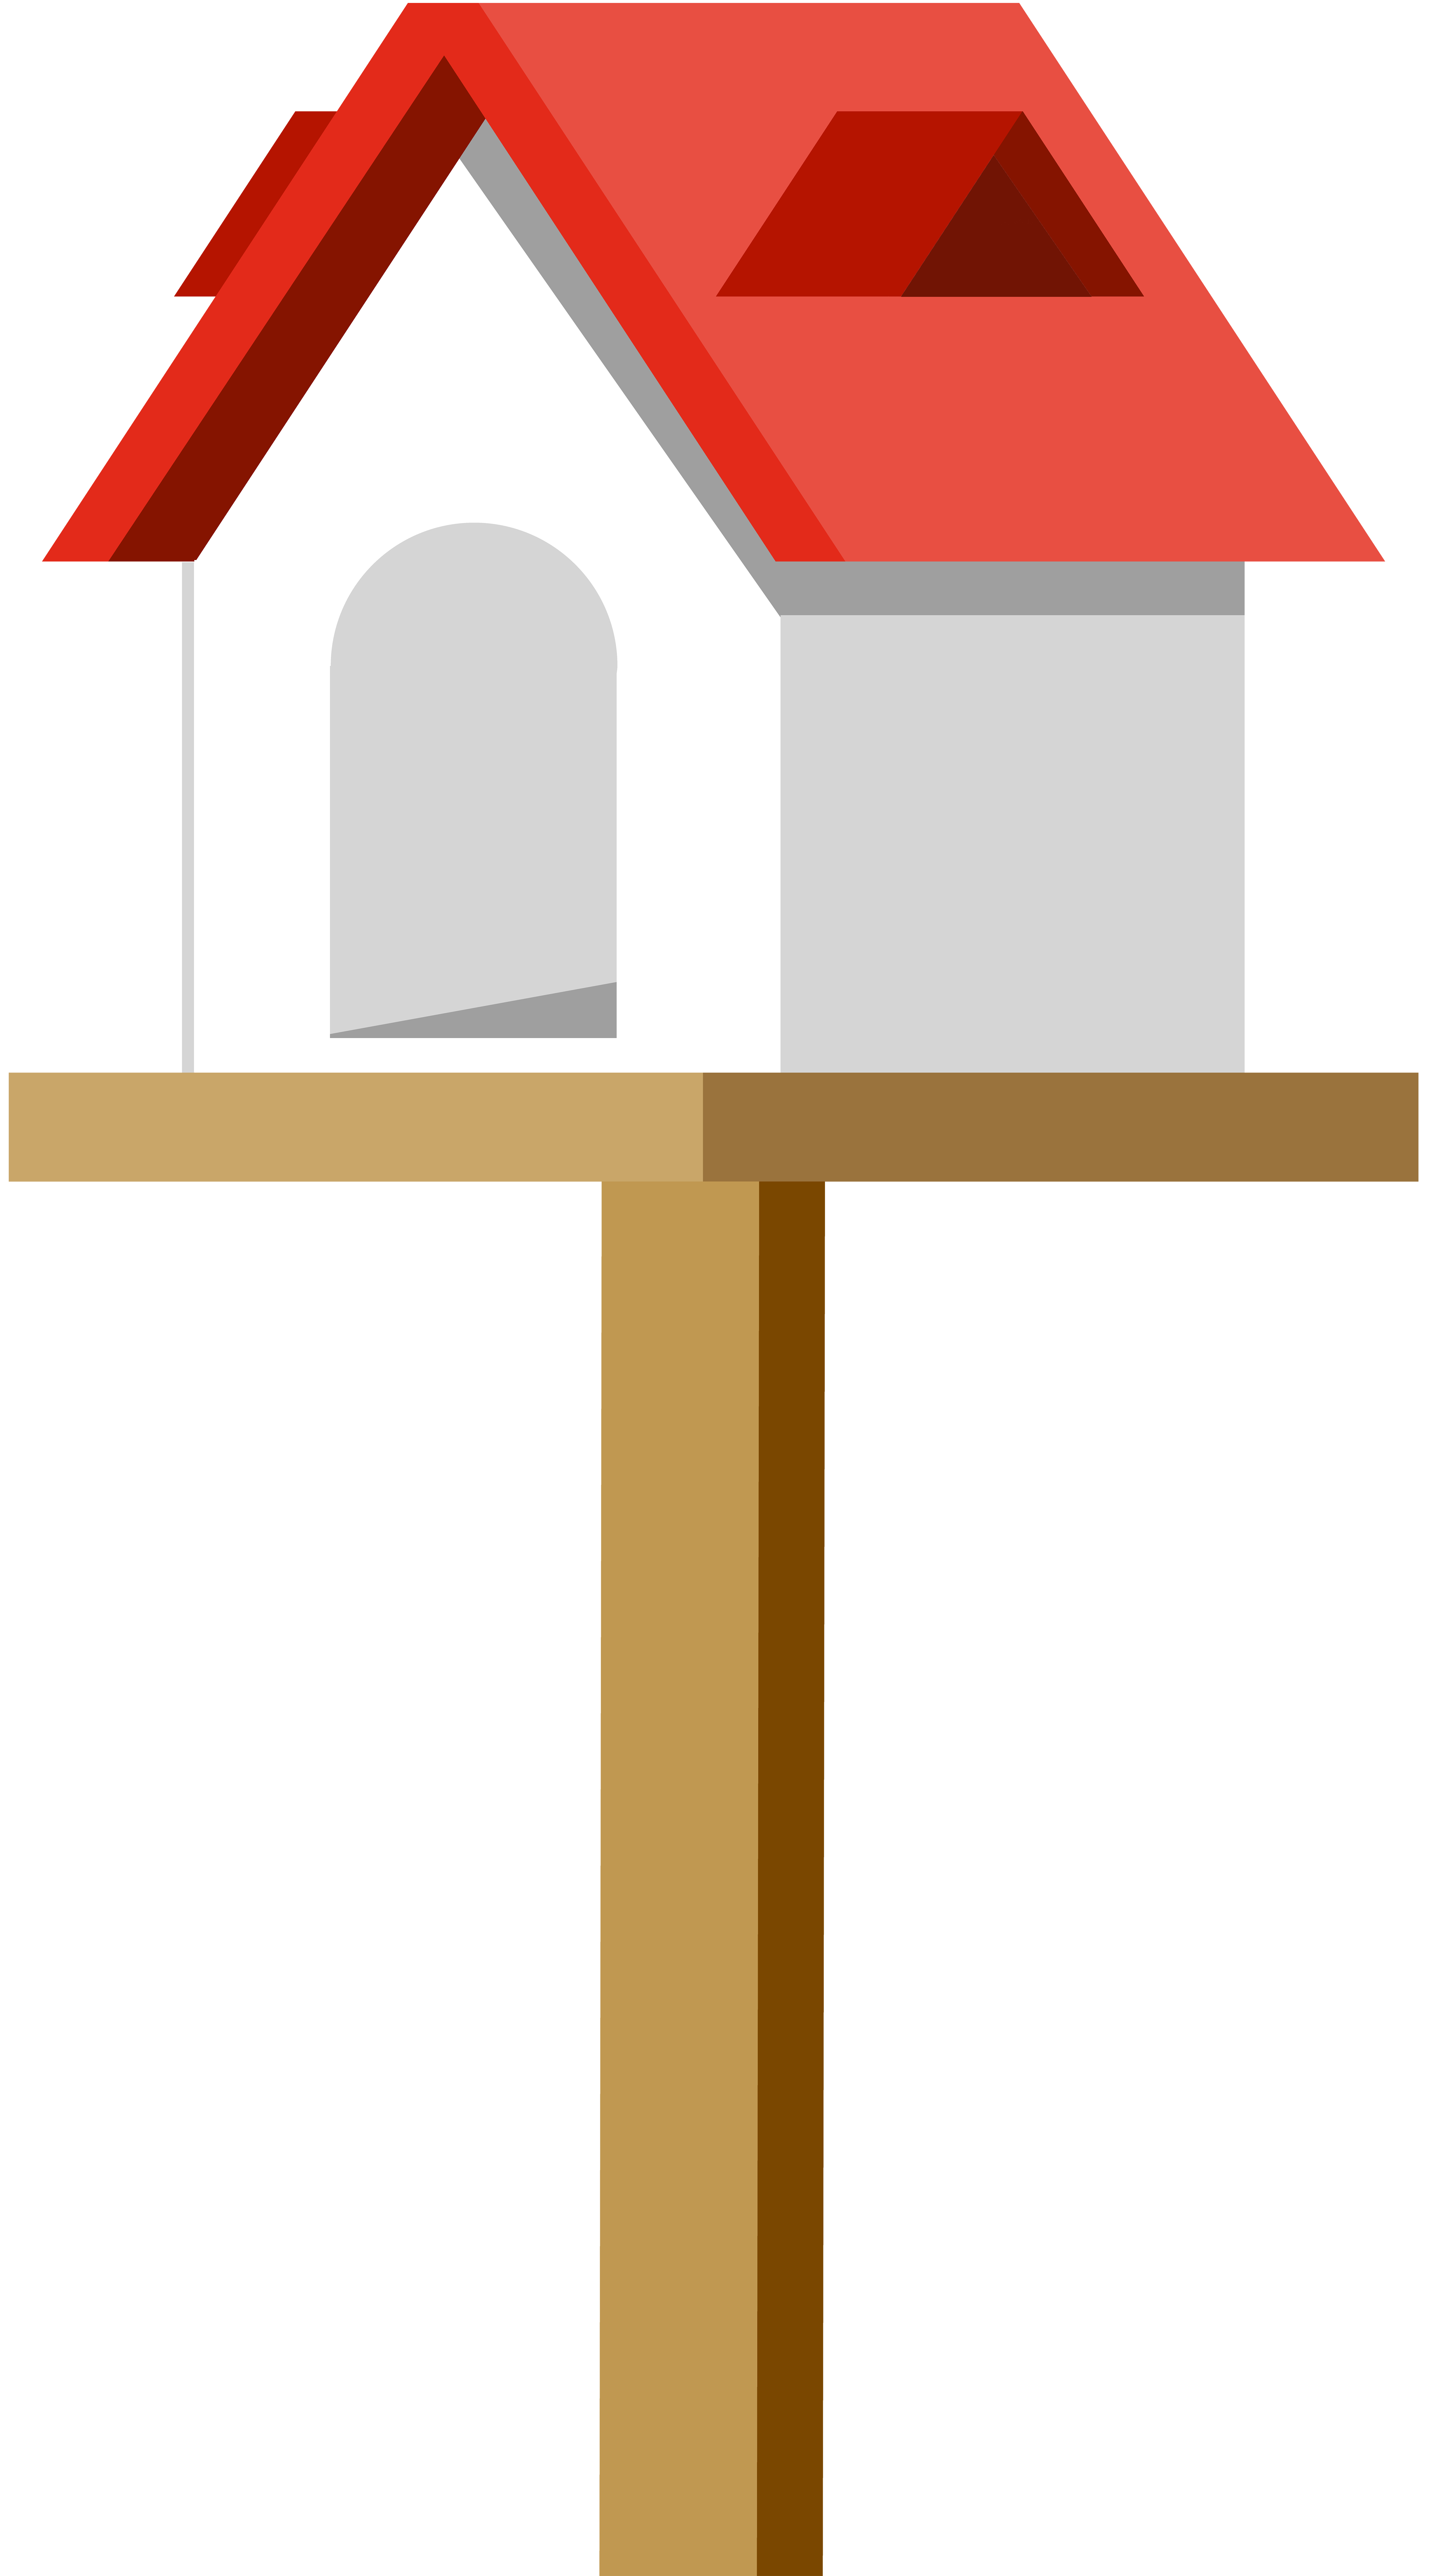 picture royalty free stock Birdhouse clipart. Png clip art image.